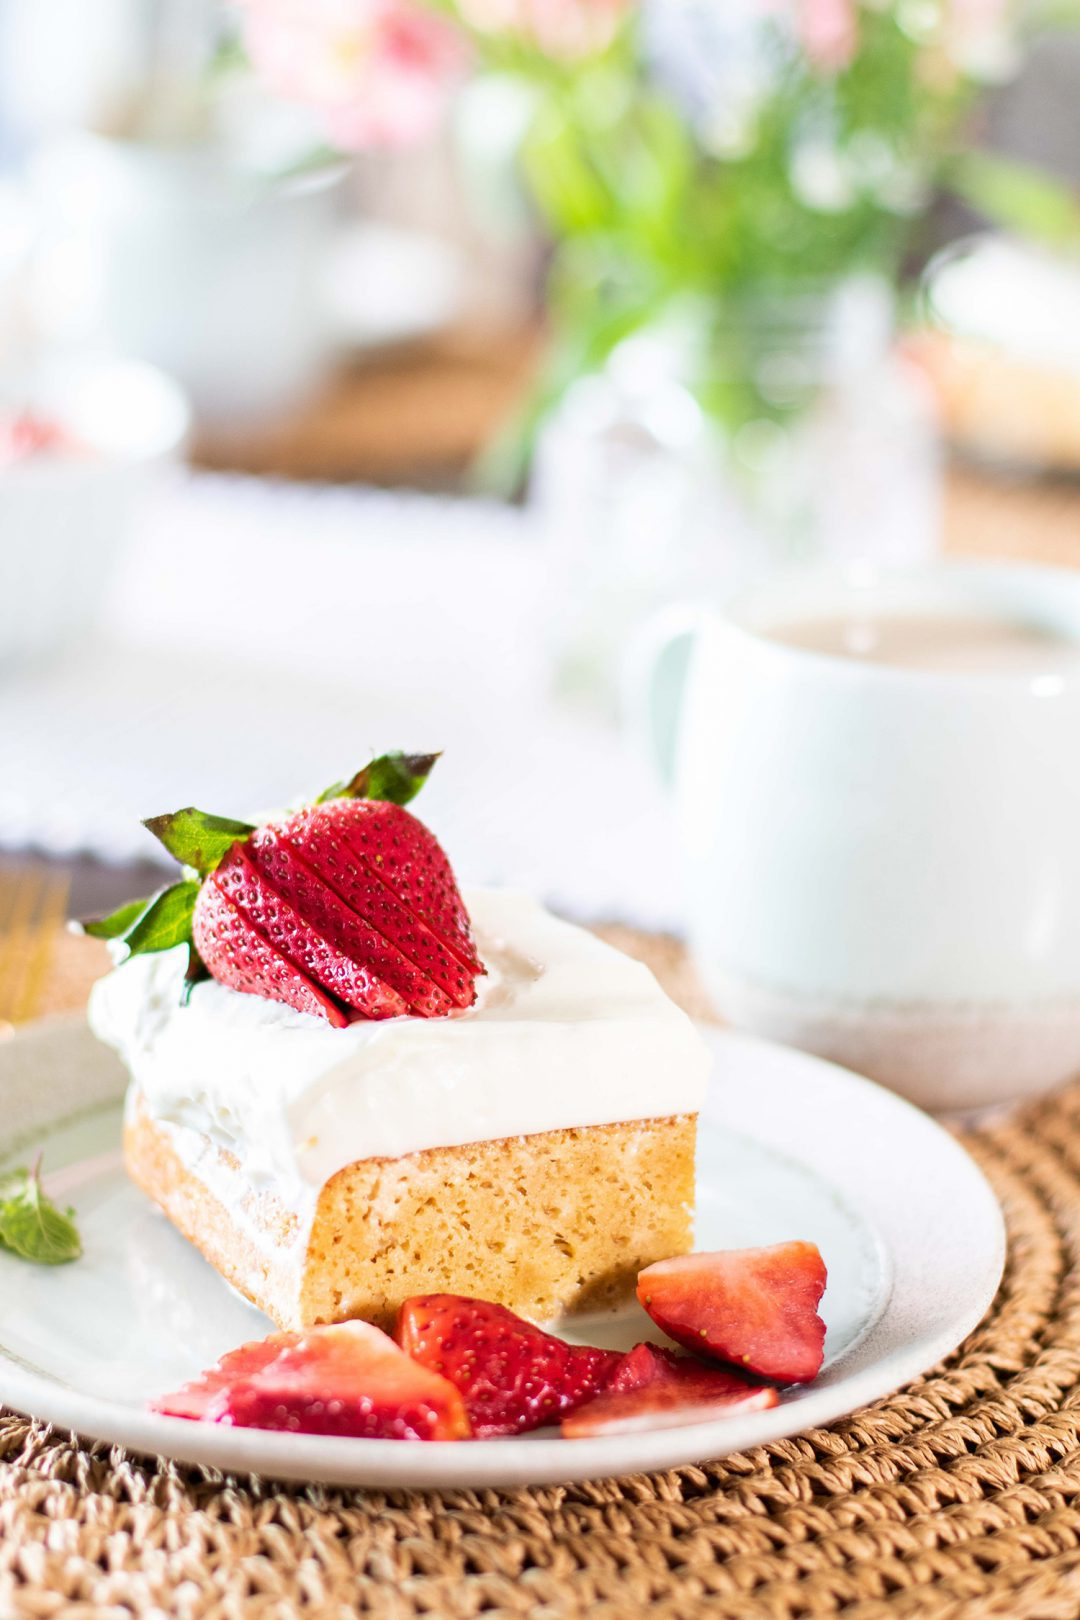 Tres Leches with strawberry on a plate.